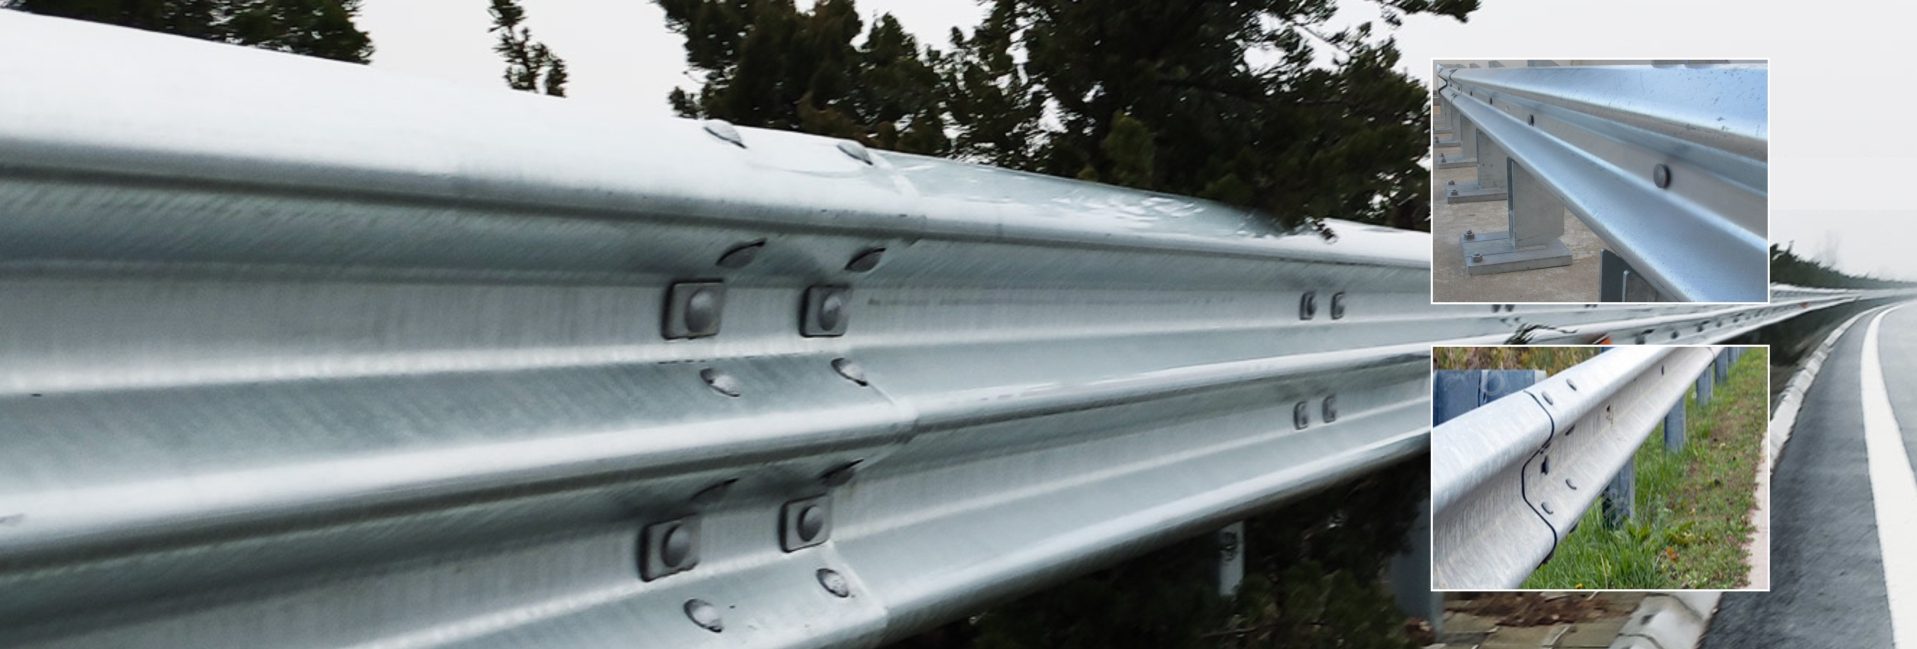 Road Crash Barrier manufacturers in Ludhiana Punjab India